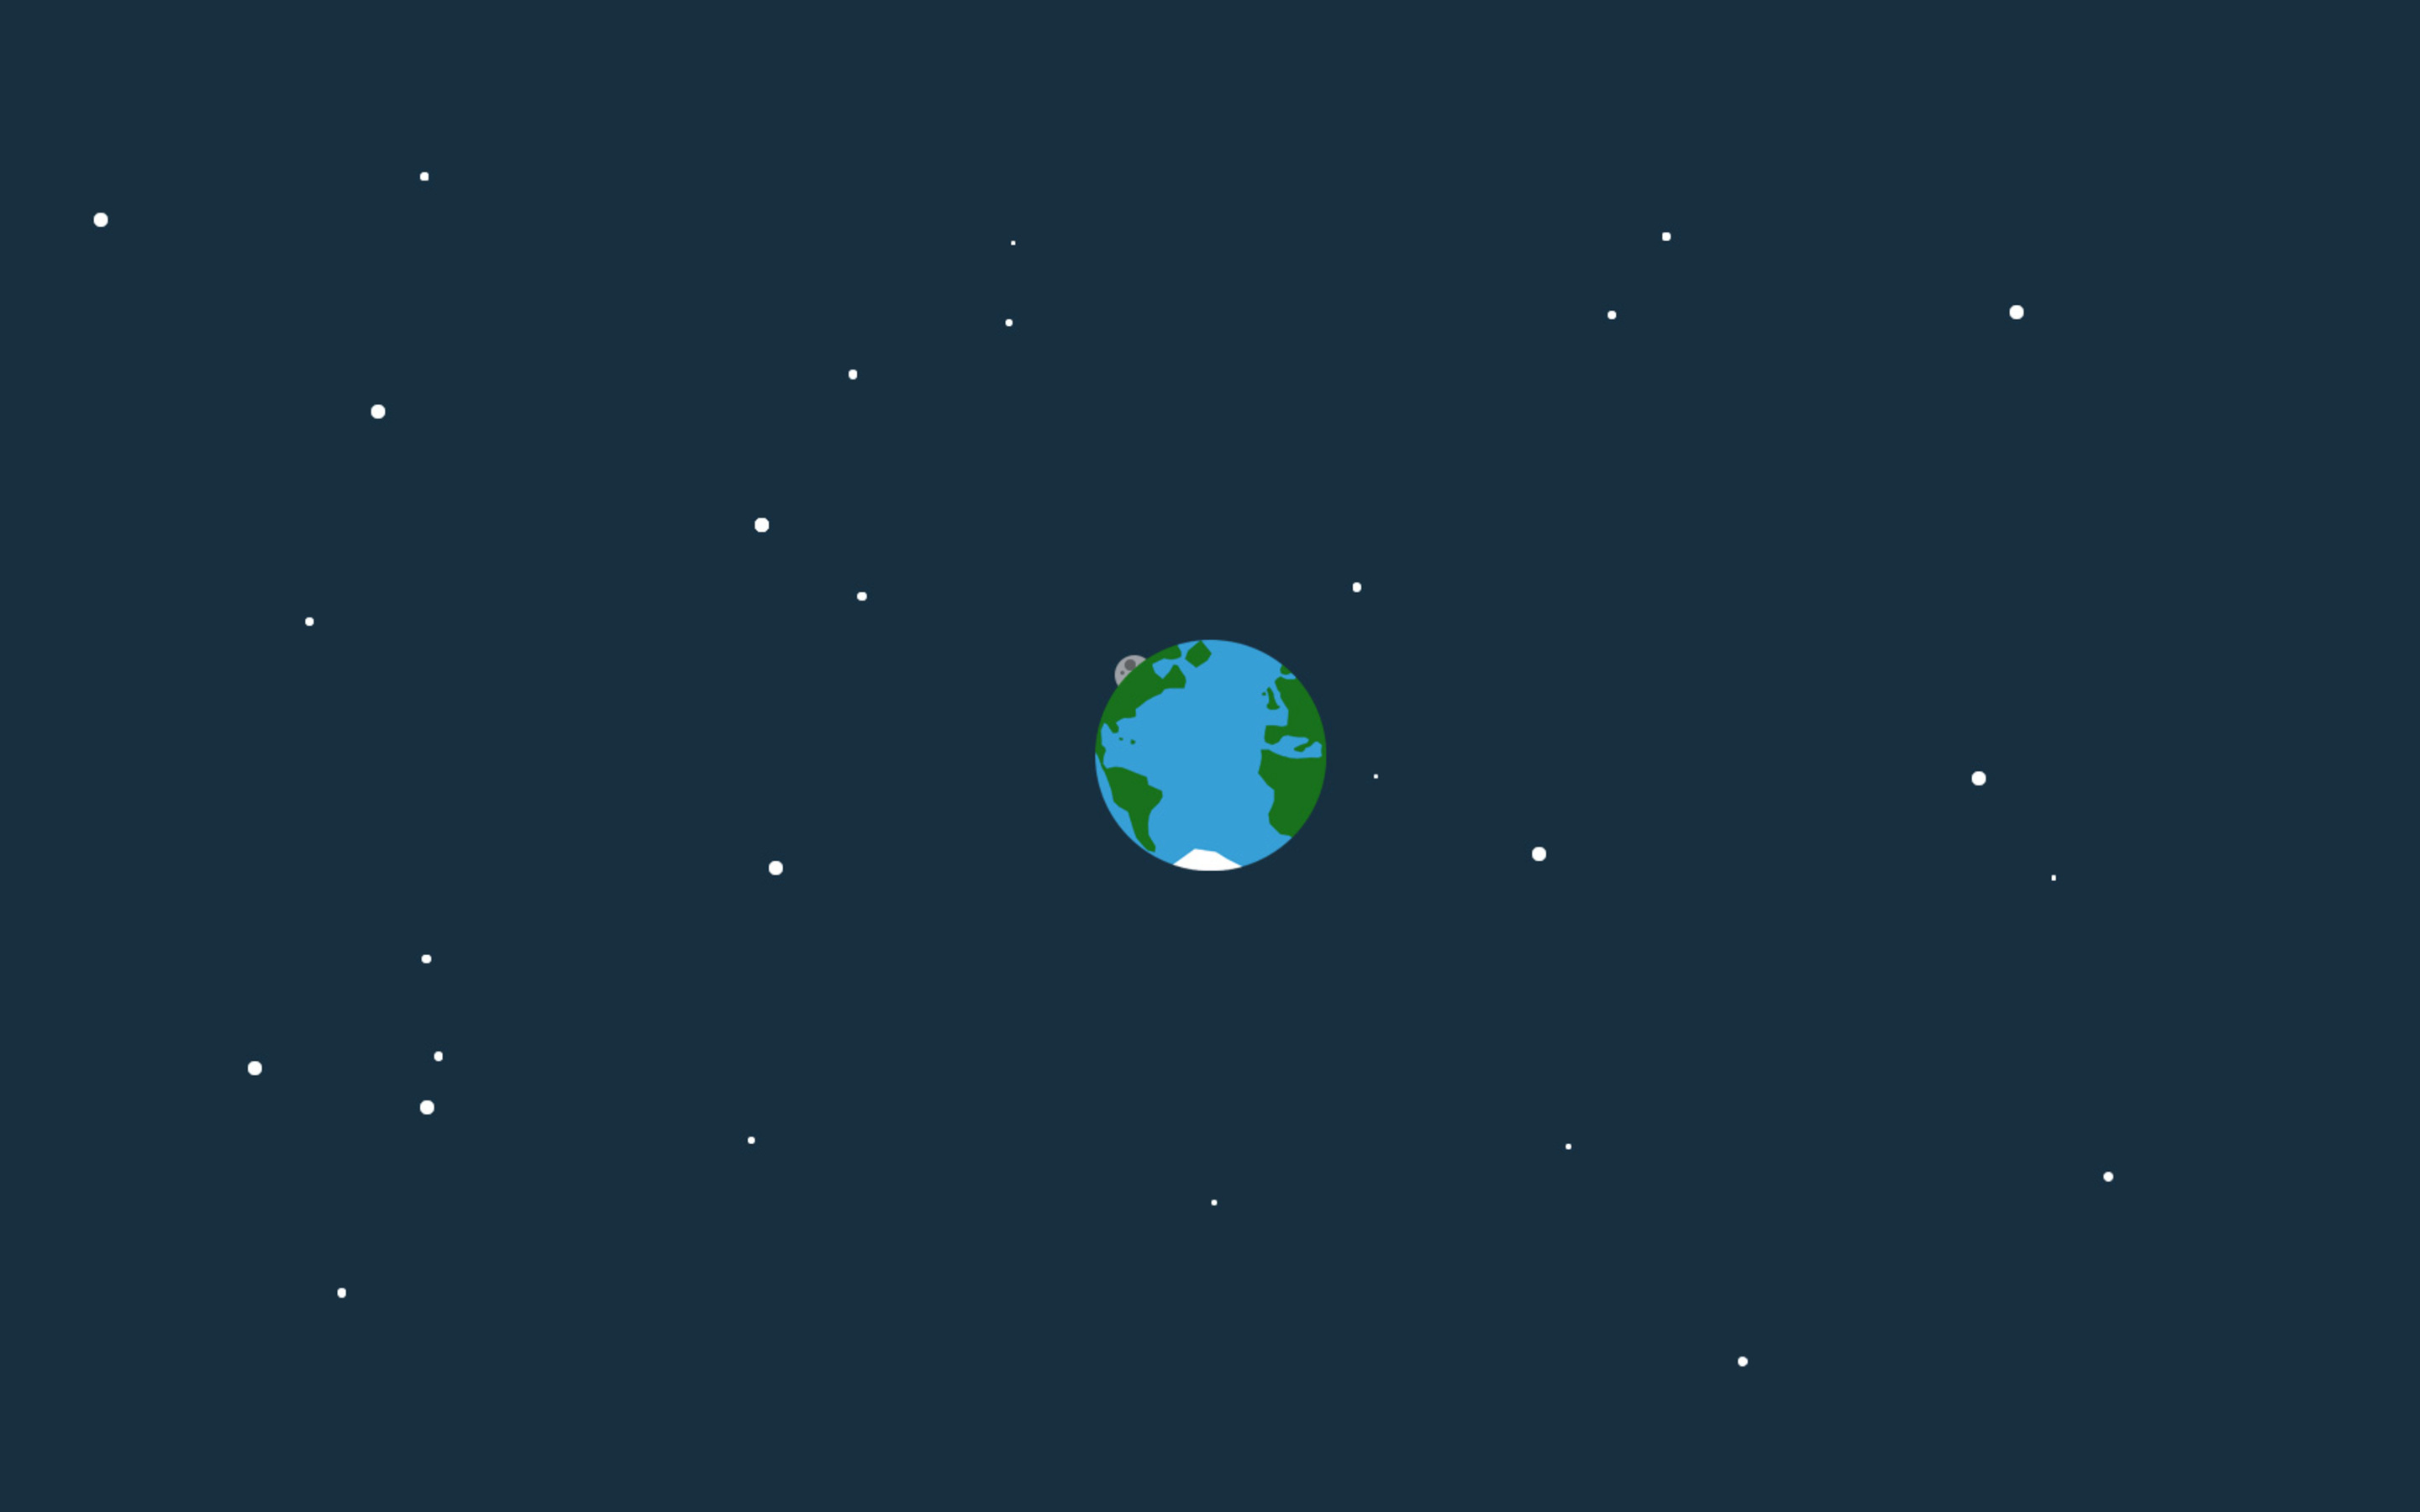 Best Wallpaper Macbook Space - space-minimalism-hd-4k-2880x1800  Image_789146.jpg